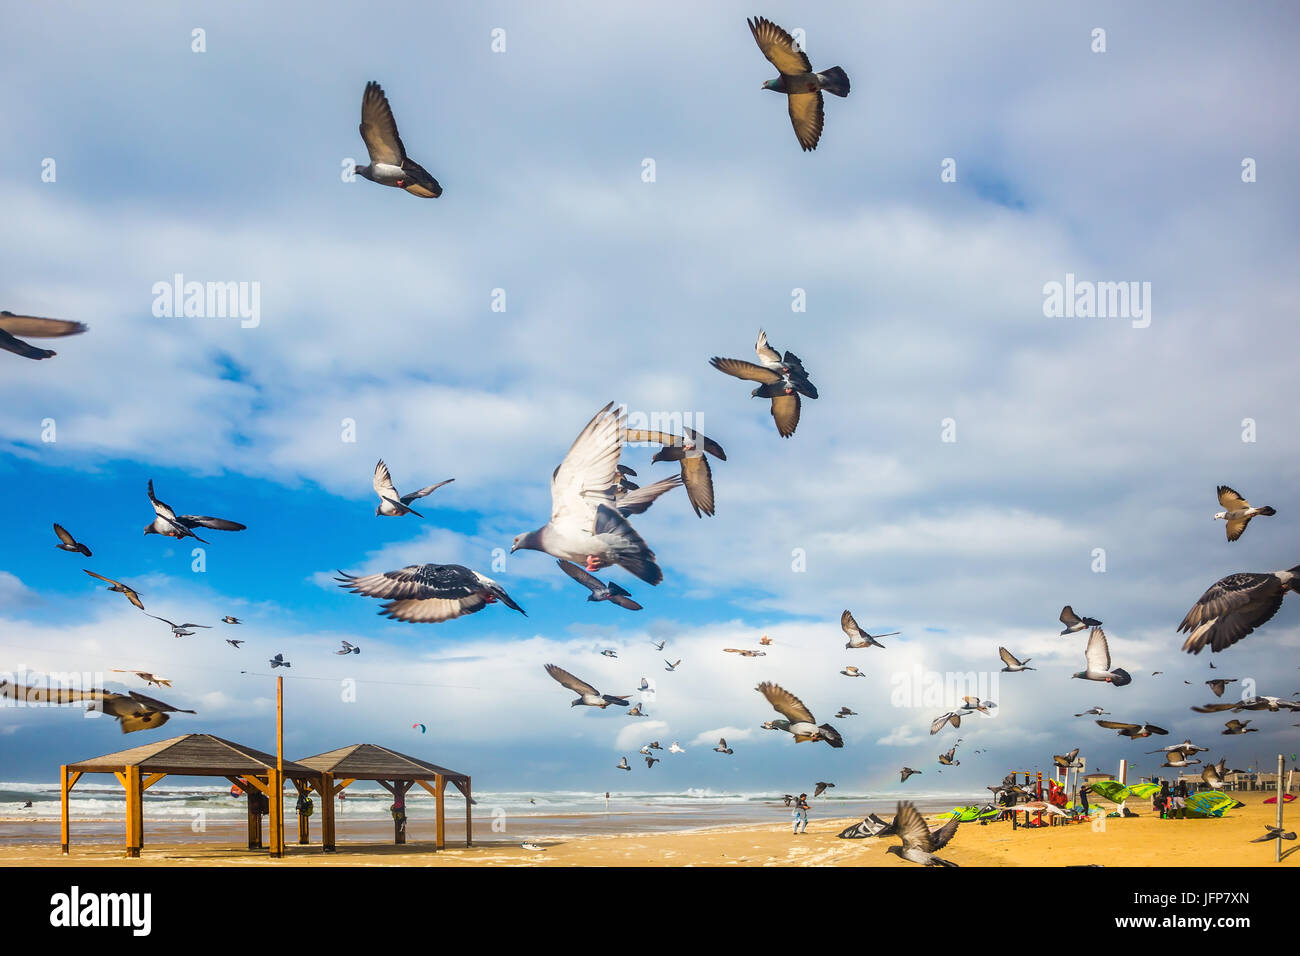 Pigeons it is noisy departs from sandy beach - Stock Image